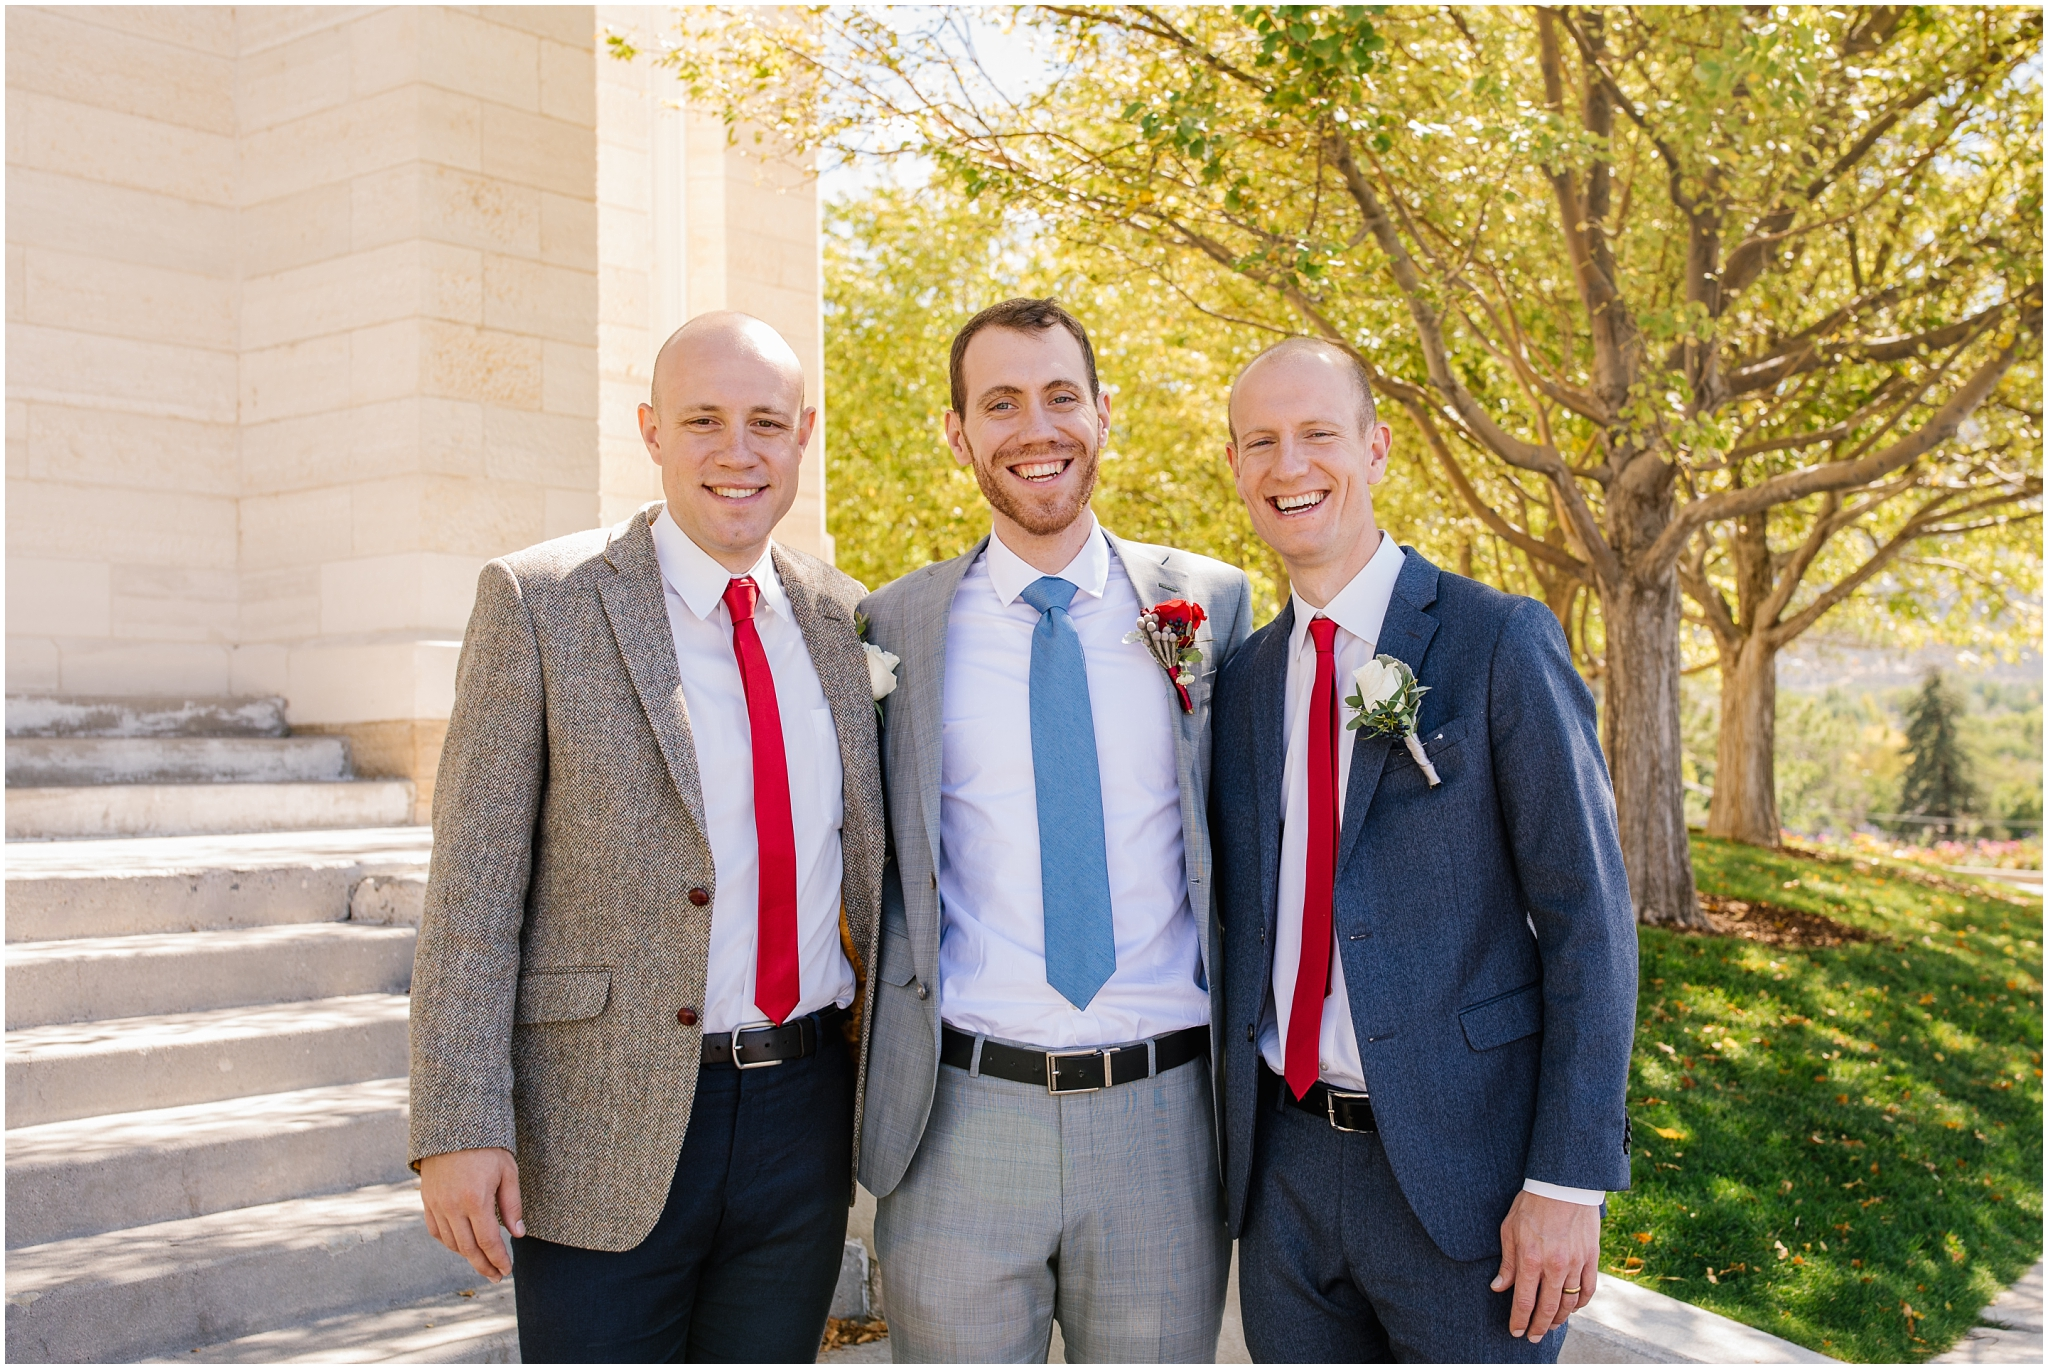 BrynneWinston-71_Lizzie-B-Imagery-Utah-Wedding-Photographer-Utah-County-Manti-Temple.jpg